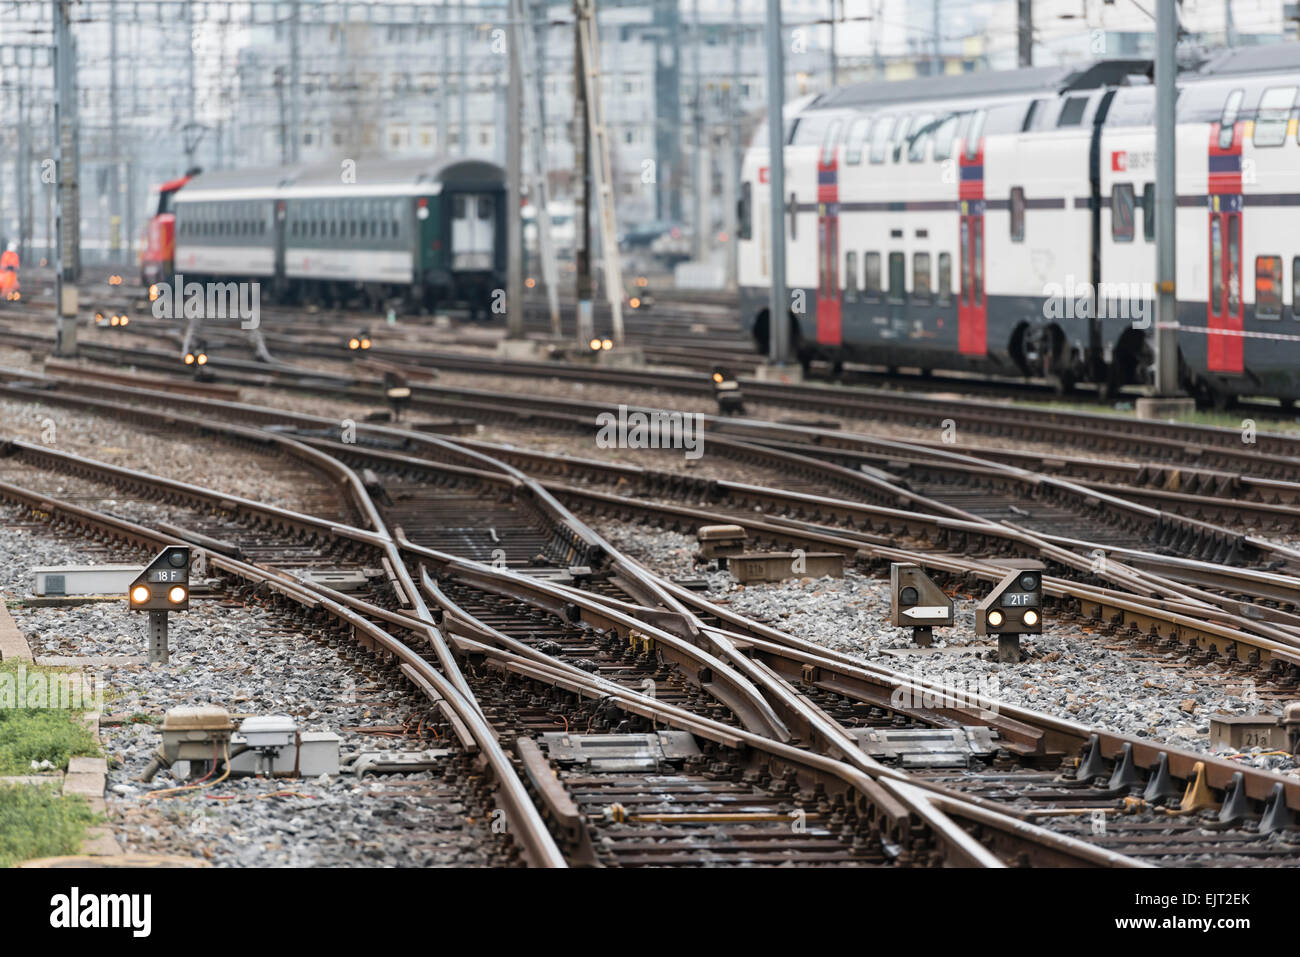 Two trains of Swiss Federal Railways SBB are leaving Zurich's busy main station with its many railway junctions - Stock Image